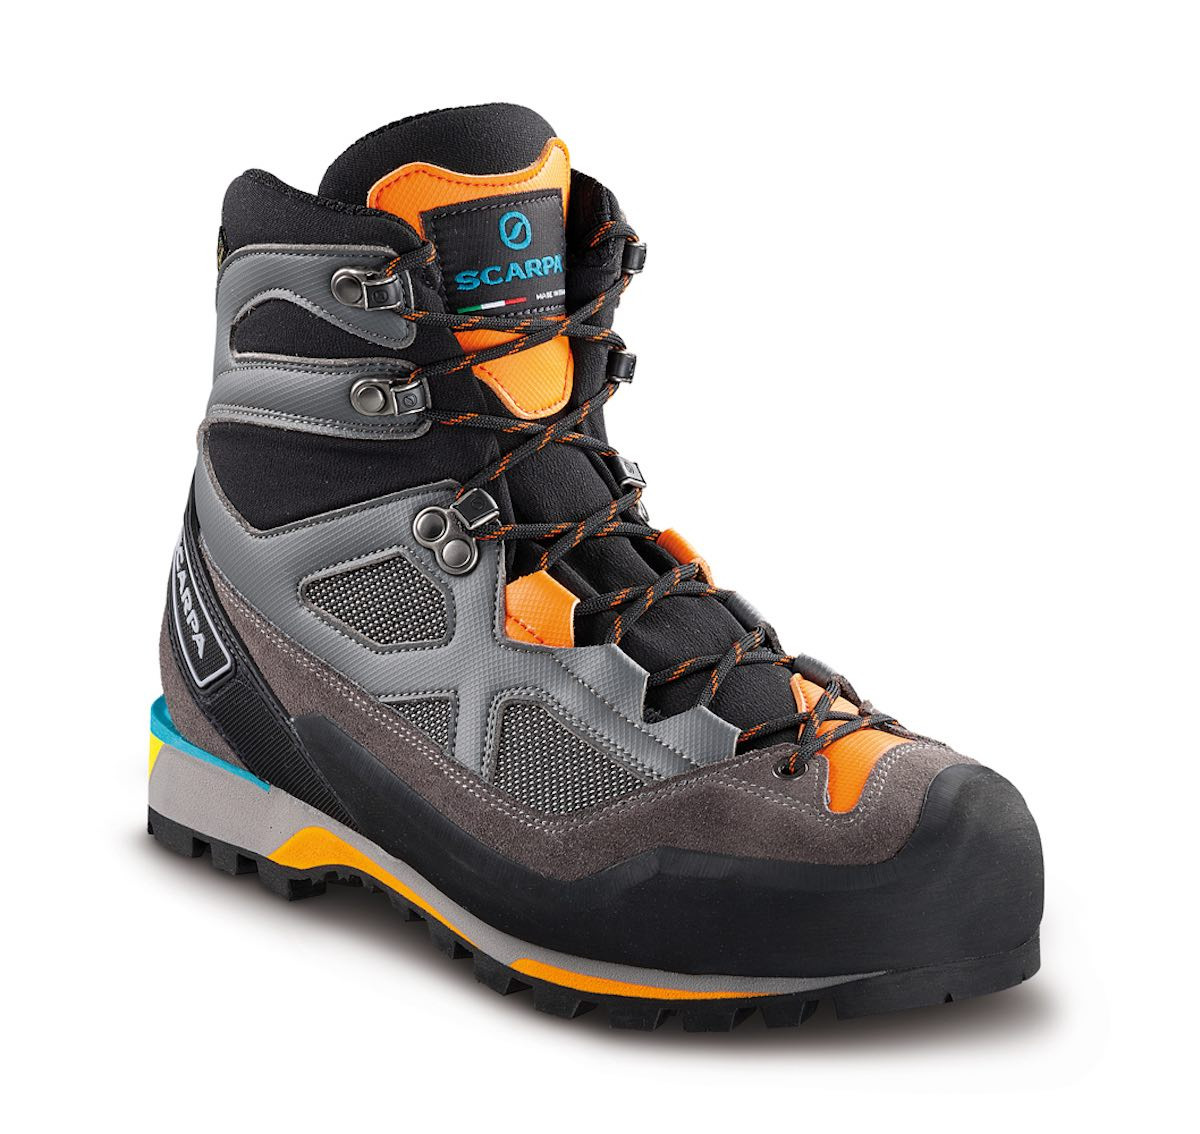 dcec4eb2 Scarpa Rebel Lite Gtx Smoke-Papaya | Fjellsport.no